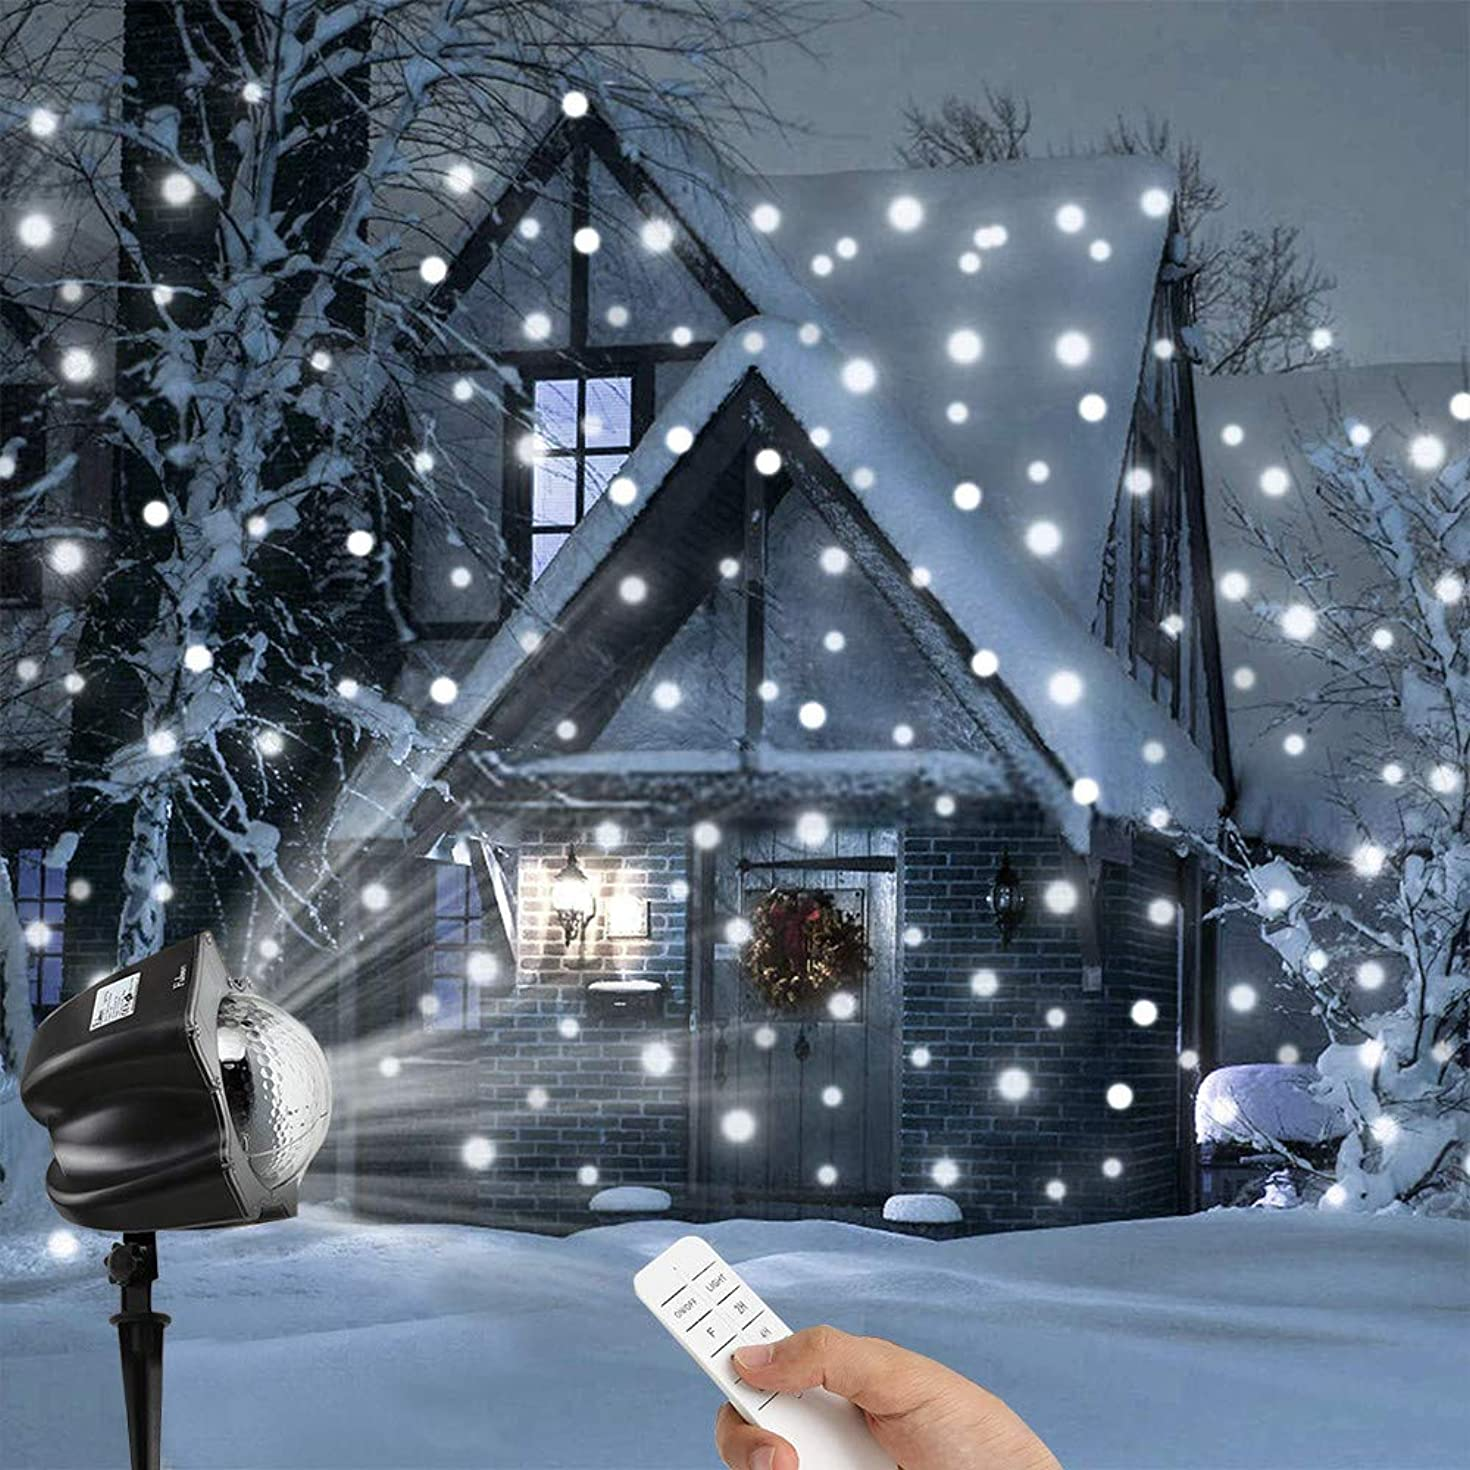 VonVonCo Christmas Moving Snowflakes Projector Light, 3.6W Projection Spotlight Christmas Lamp (250240230mm, Black)